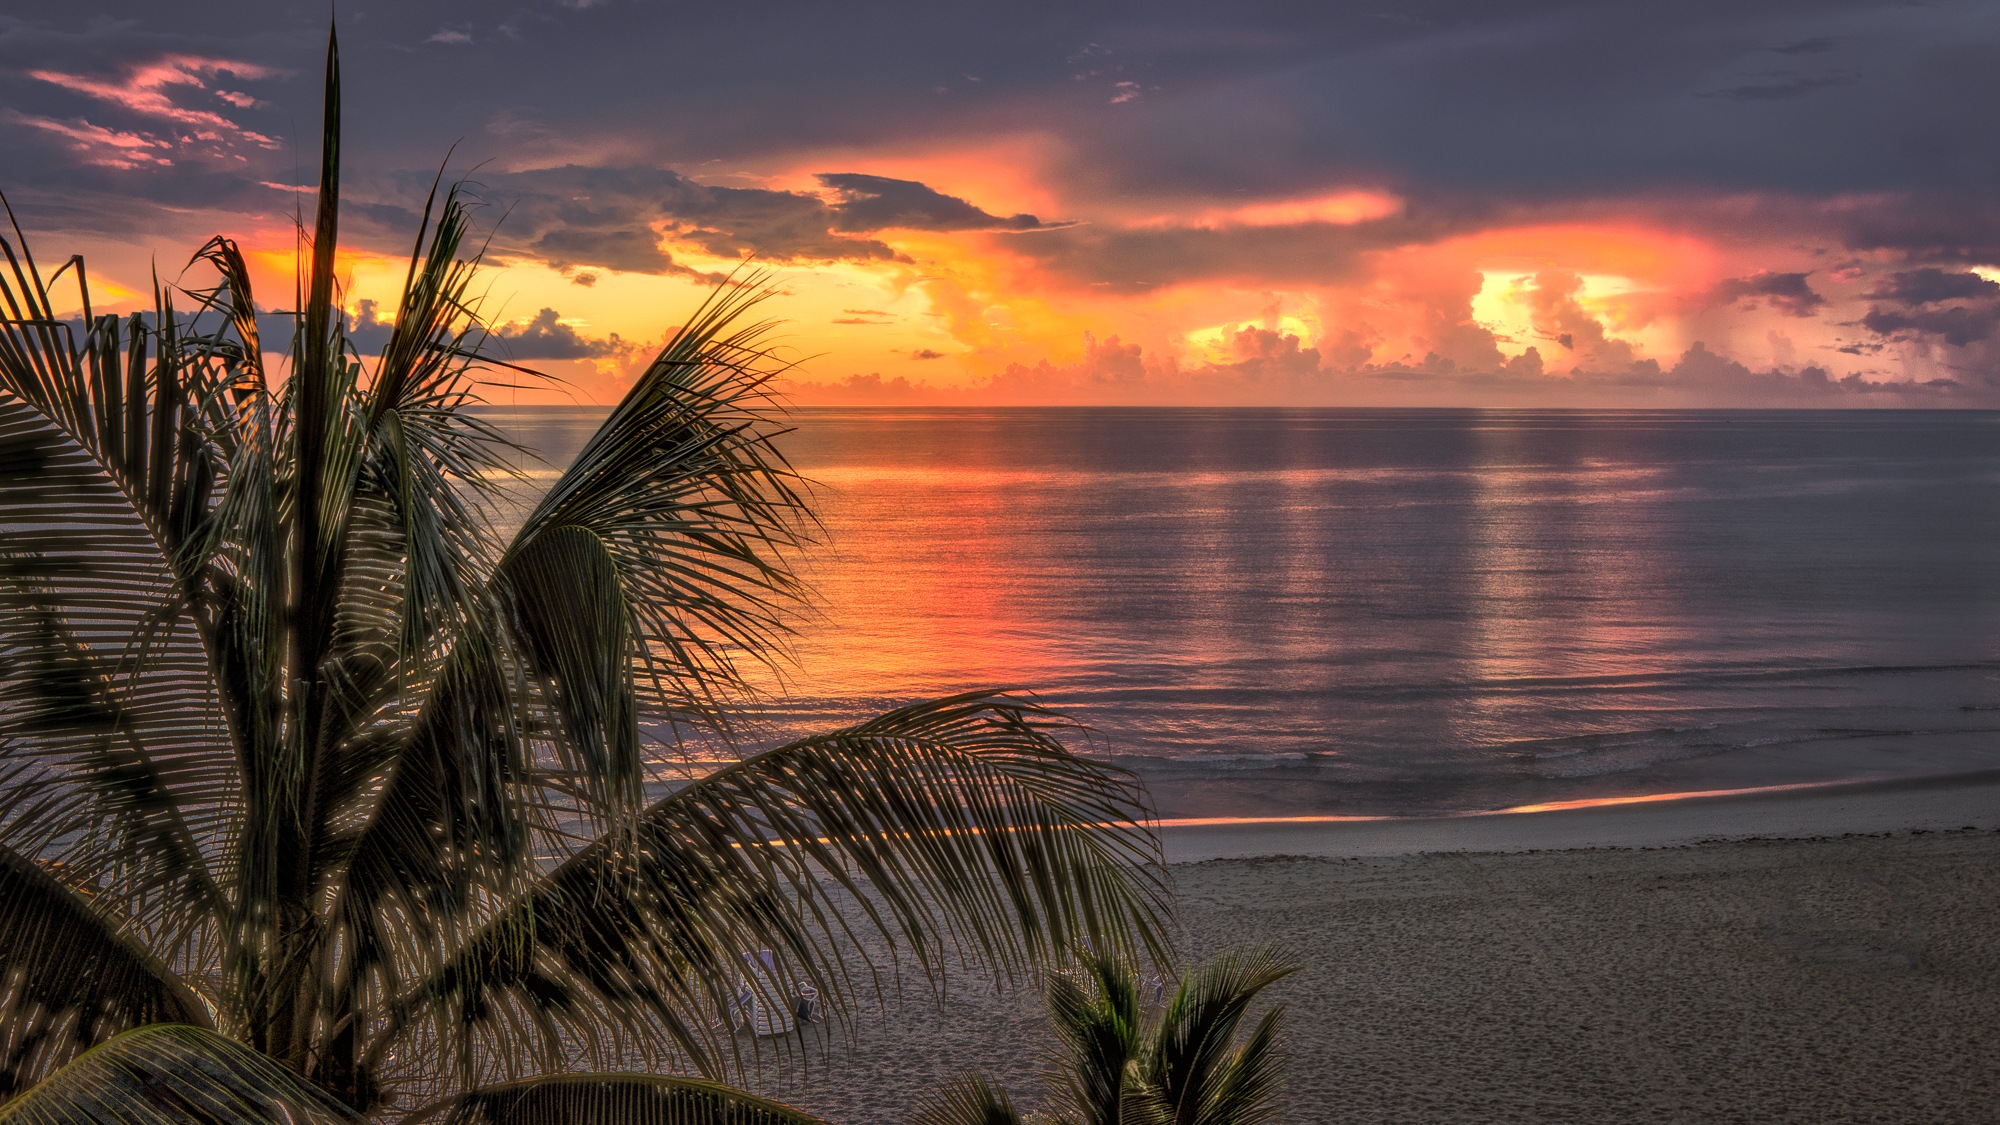 Dawn on the Florida Coast by Steve Director